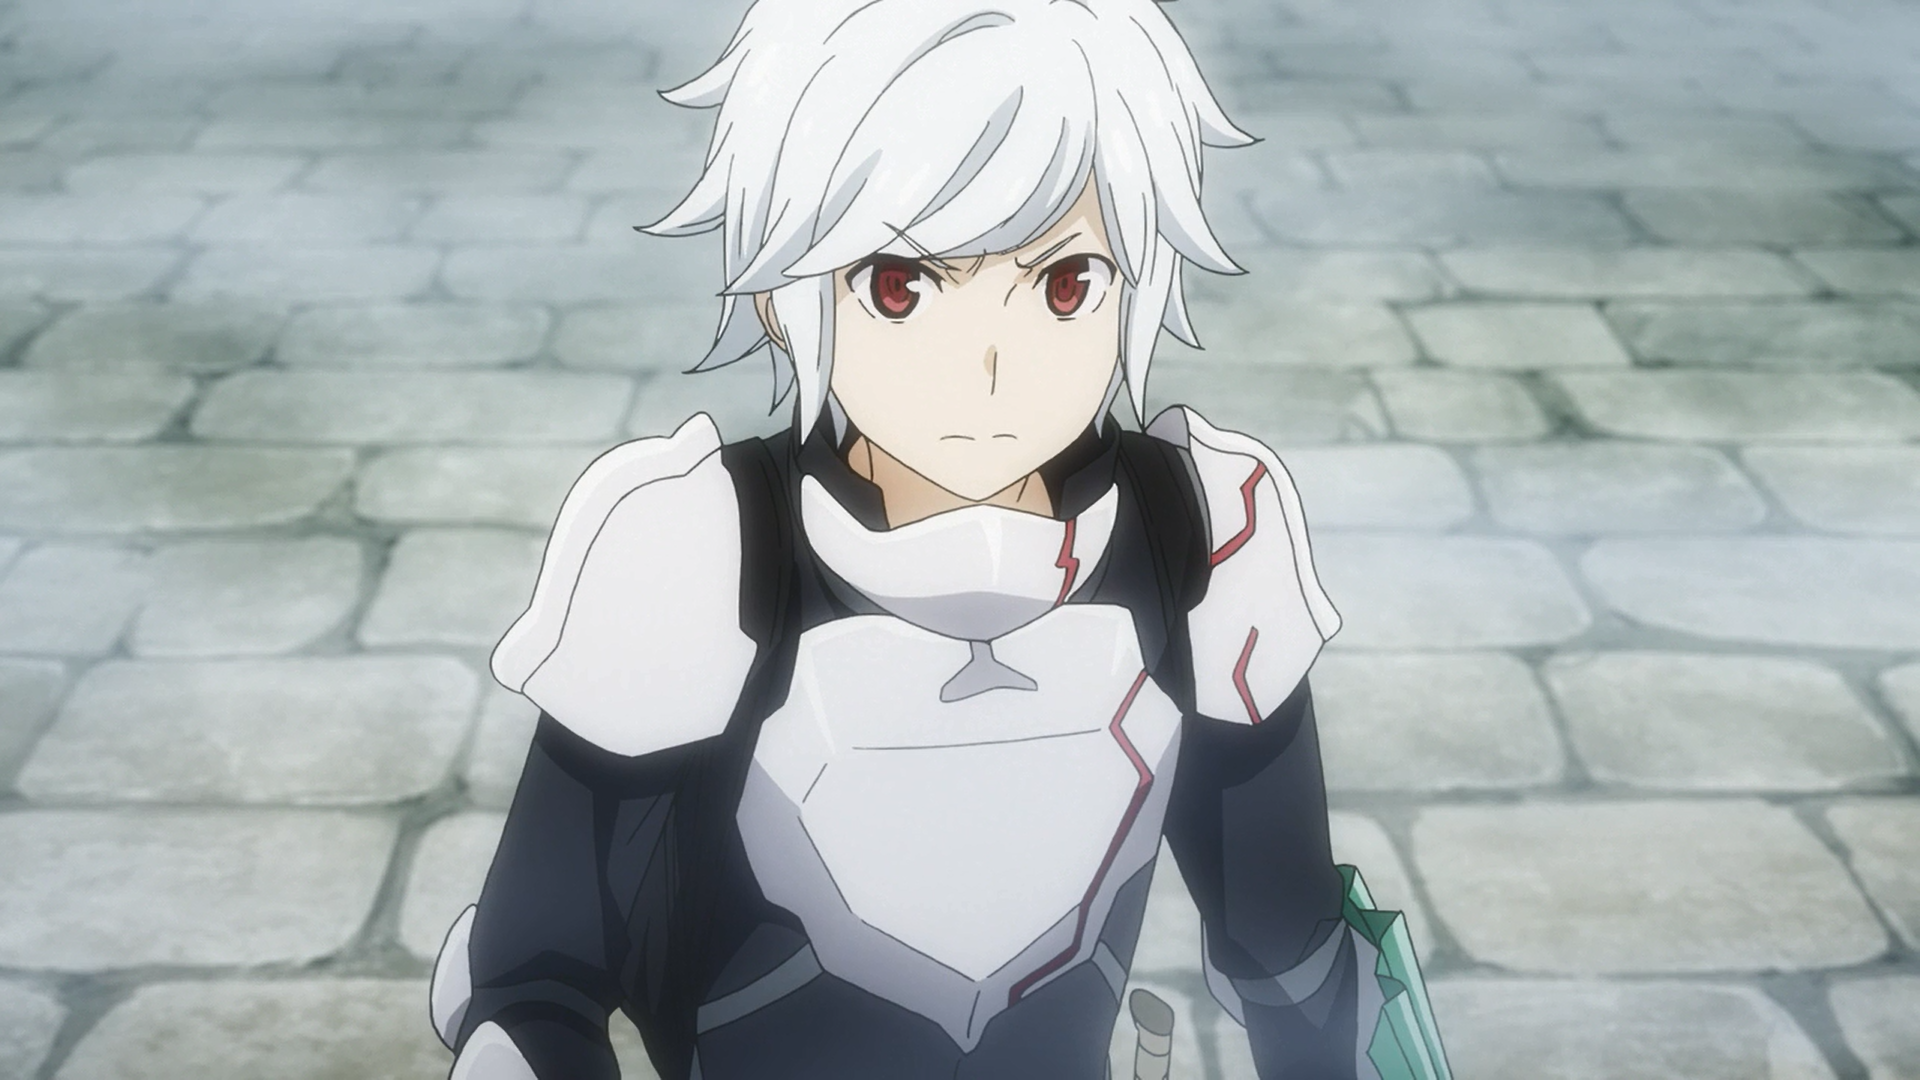 Bell Cranel | DanMachi Wiki | FANDOM powered by Wikia